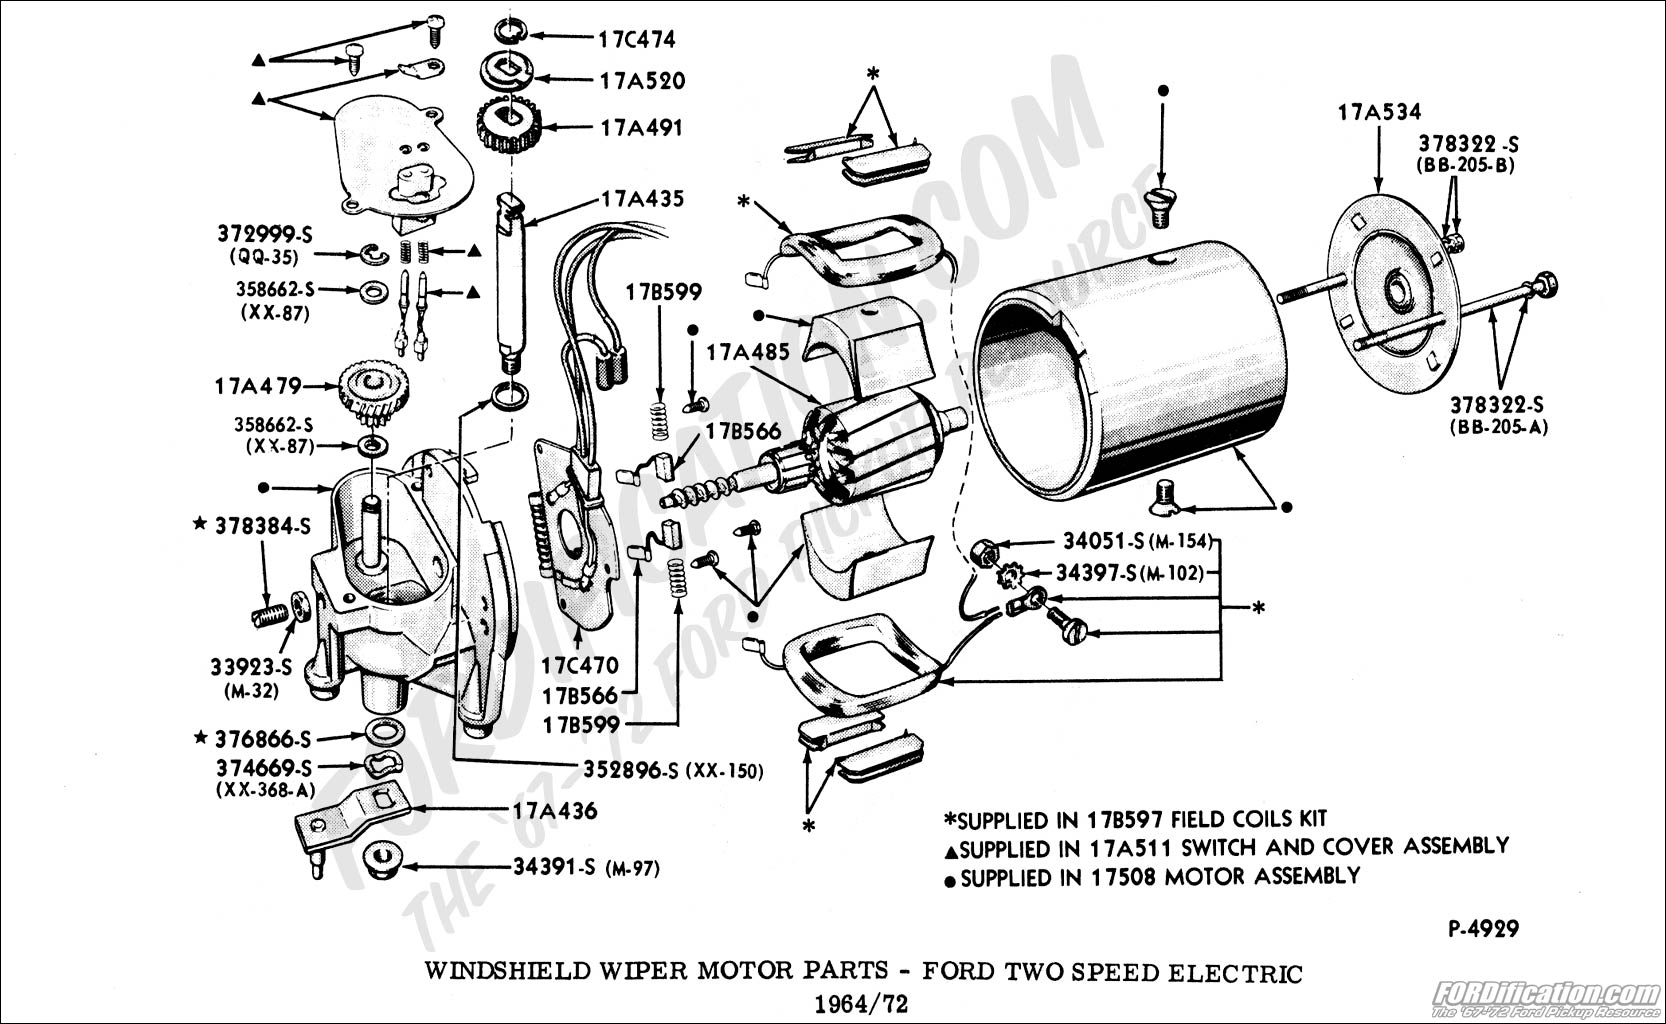 Ford Truck Technical Drawings And Schematics Section I Ktm 300 Starter Wiring Diagram Windshield Wiper Motor Parts